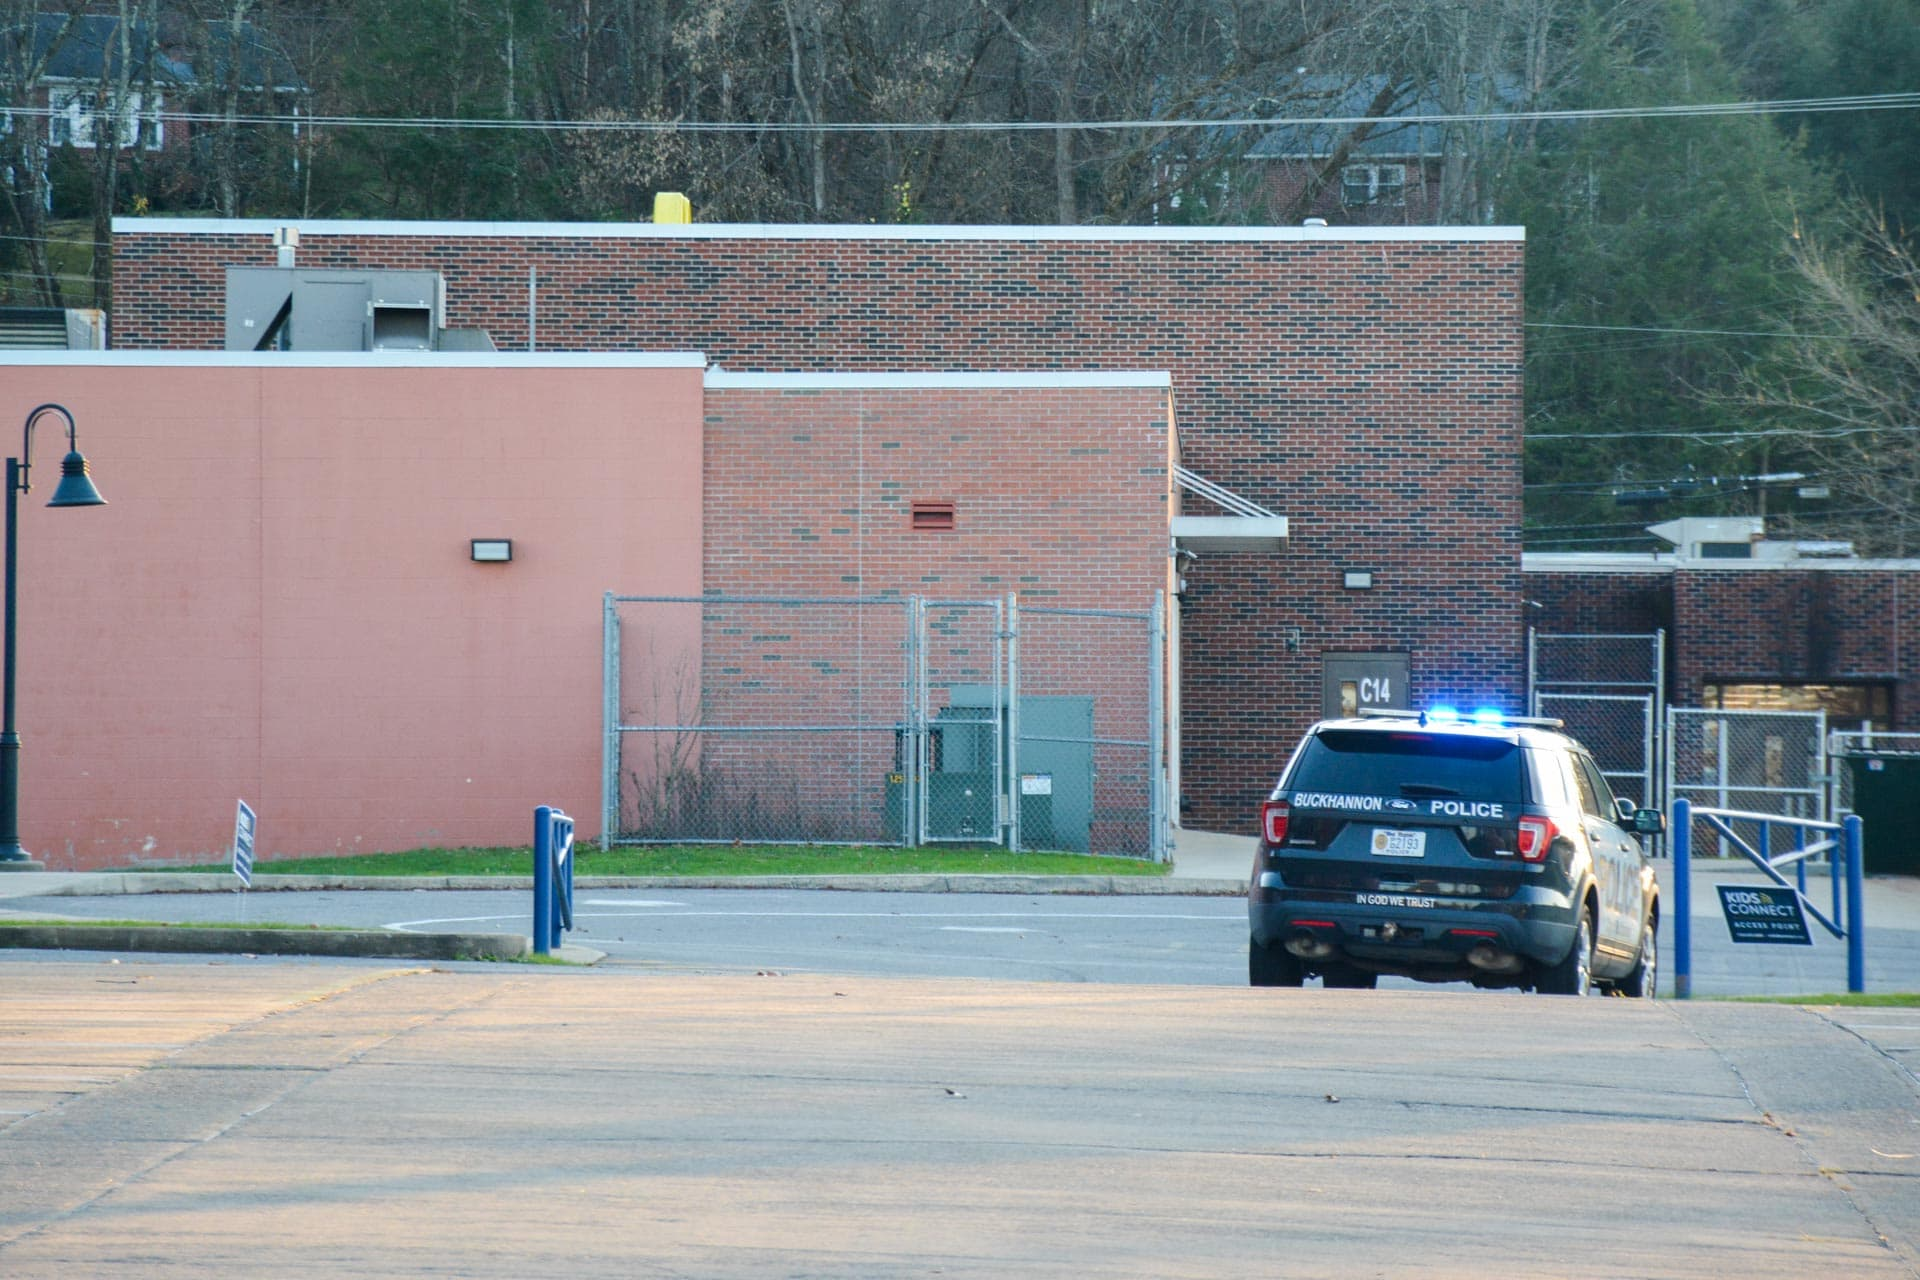 Stabbing reportedly occurred on BAES basketball court